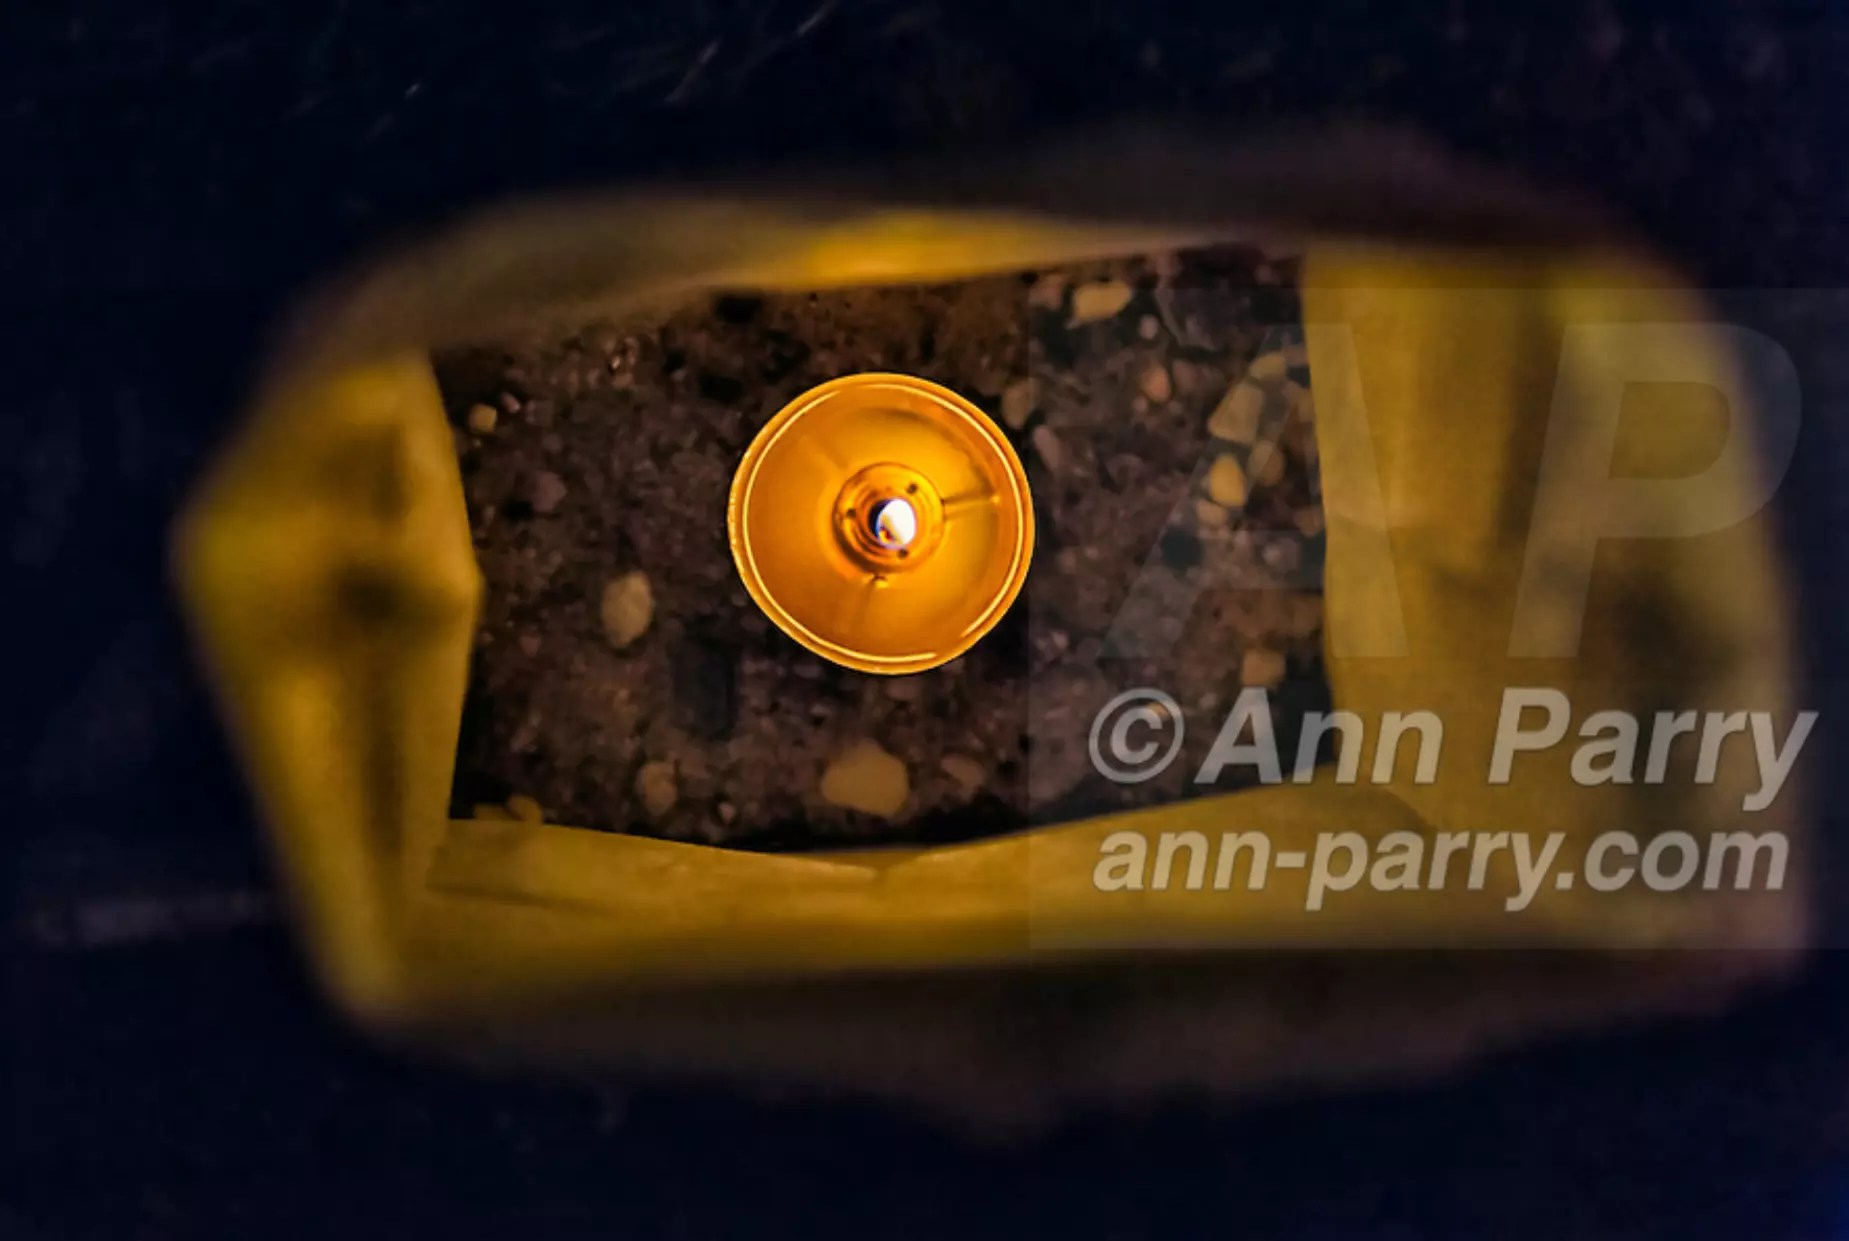 Merrick, NY, USA. Sept. 11, 2012. Lit tea candle is seen Inside one of 500 Luminary Bags distributed among the 215 Wenshaw Park homes on 11th Anniversary of 9/11, by Wenshaw Park Civic Association, Long Island, with over $500 already raised for Twin Towers Orphan Fund. Tea candle in each bag will self-extinguish overnight, and volunteers will collect the bags on 9/12.